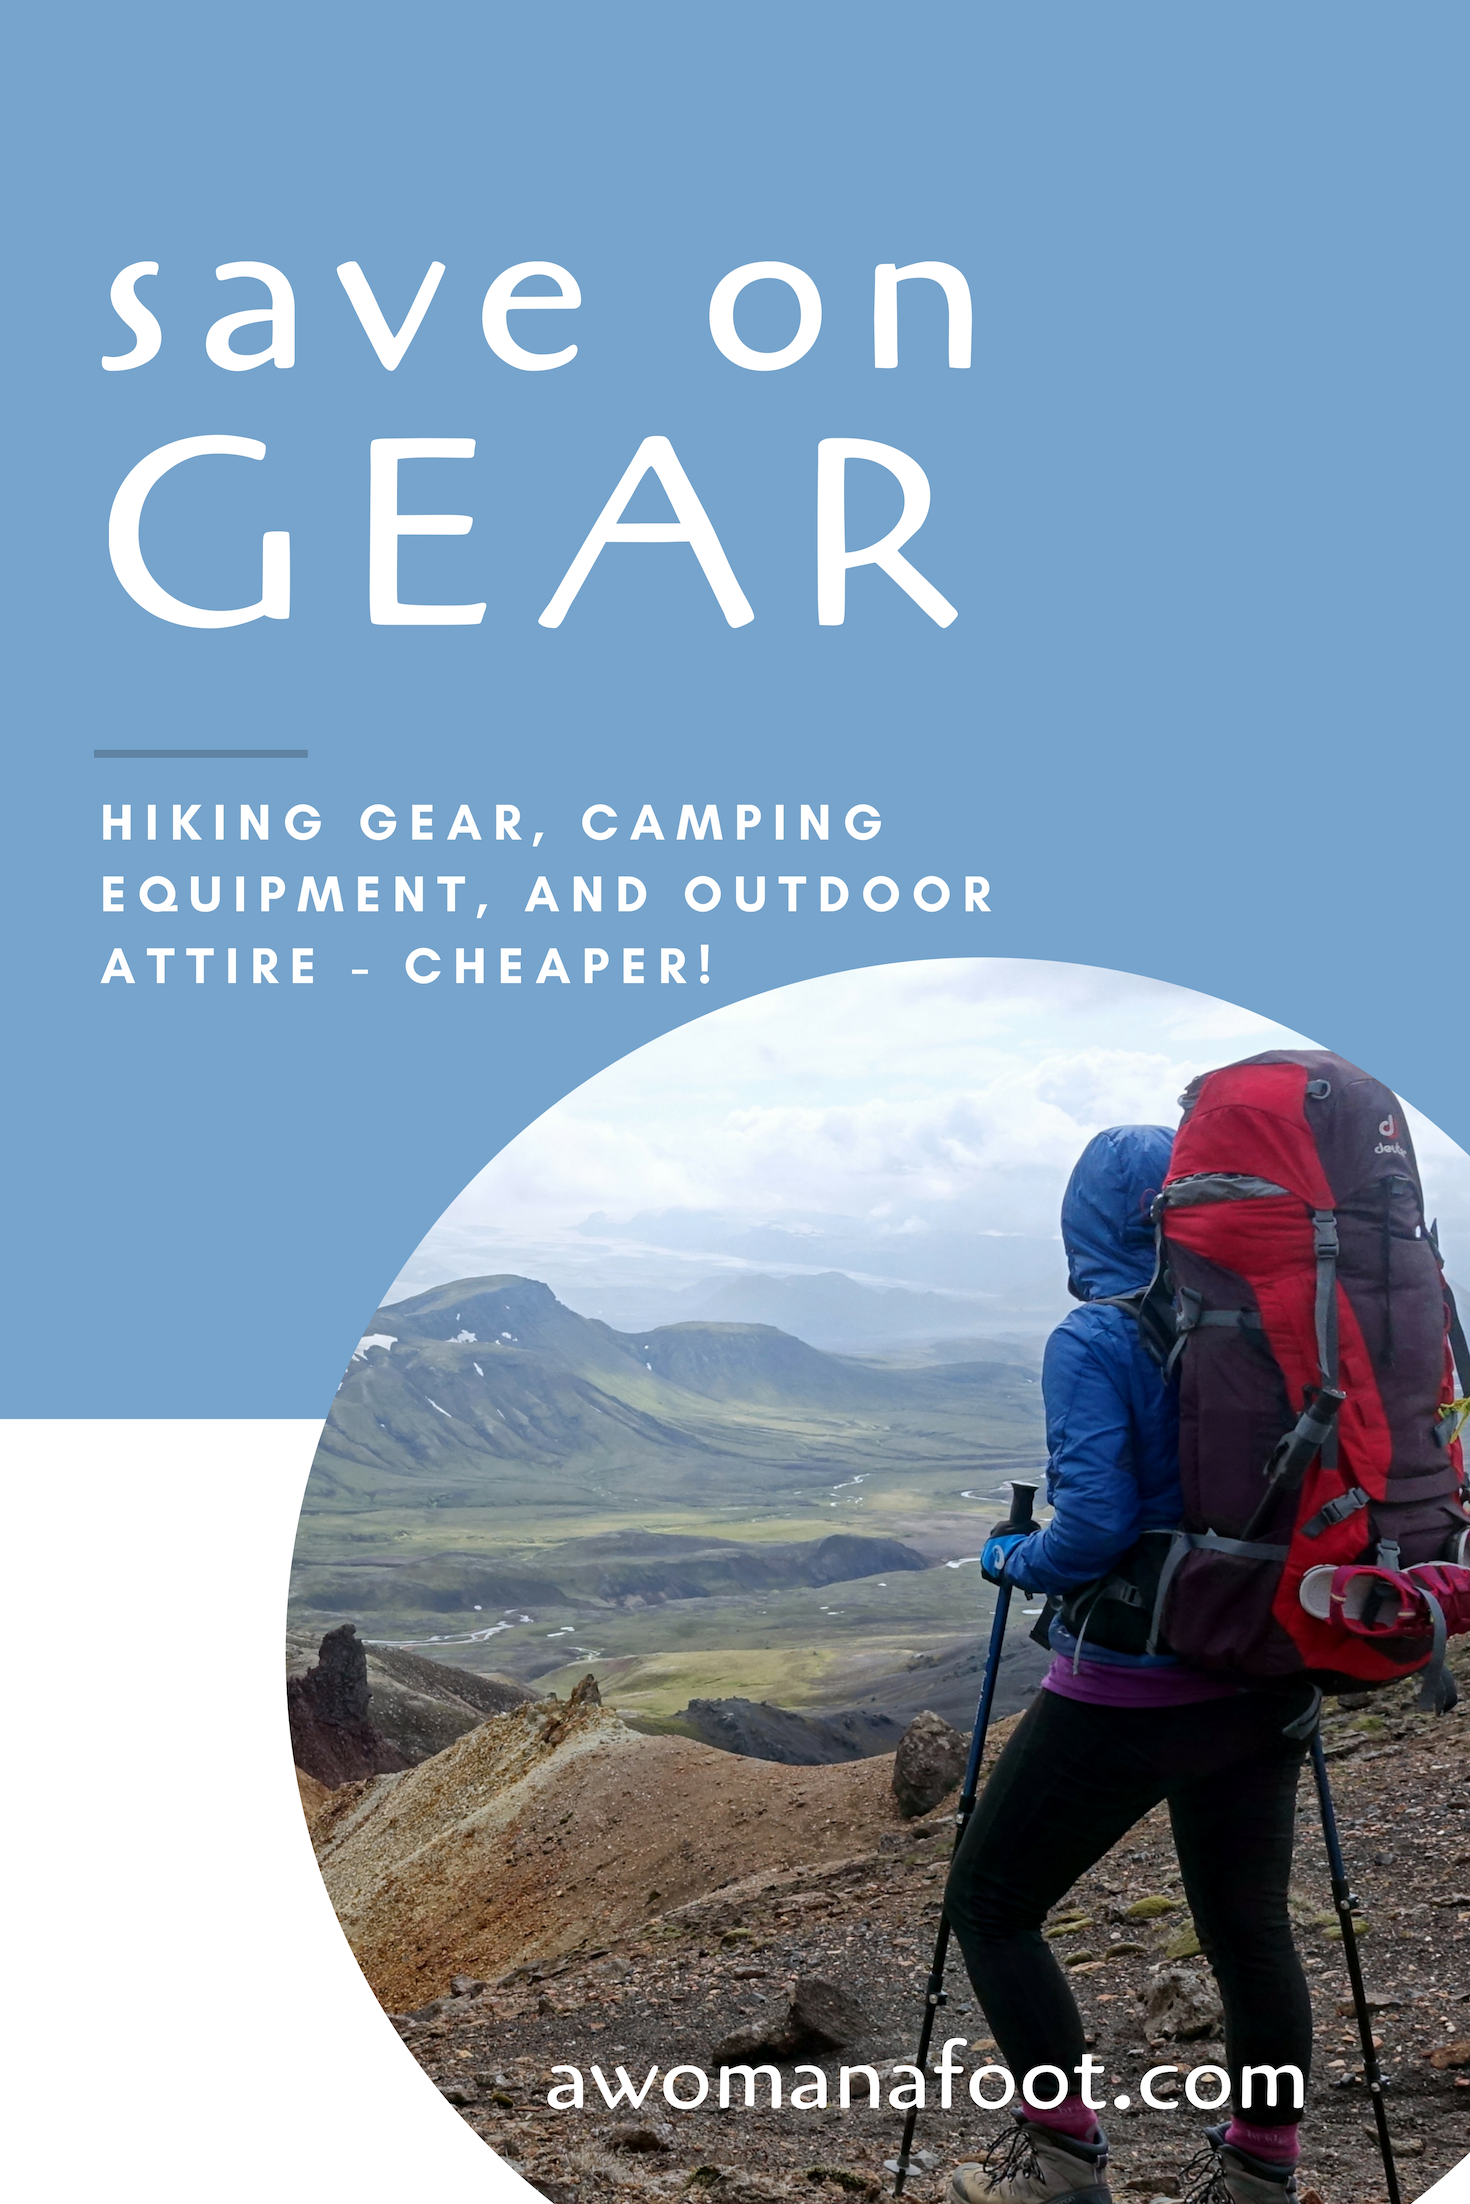 Do you want to save on hiking gear, camping equipment, and Outdoor attire? Click to access seasonal sales, merchant coupons and more @awomanafoot.com! | Hiking & Camping Gear | What to wear hiking | How to save on Outdoor gear | Coupons and sales | Tips on cheaper gear | #hiking #camping #gear #saving #coupons #sales #Outdoor #adventure #Equipment